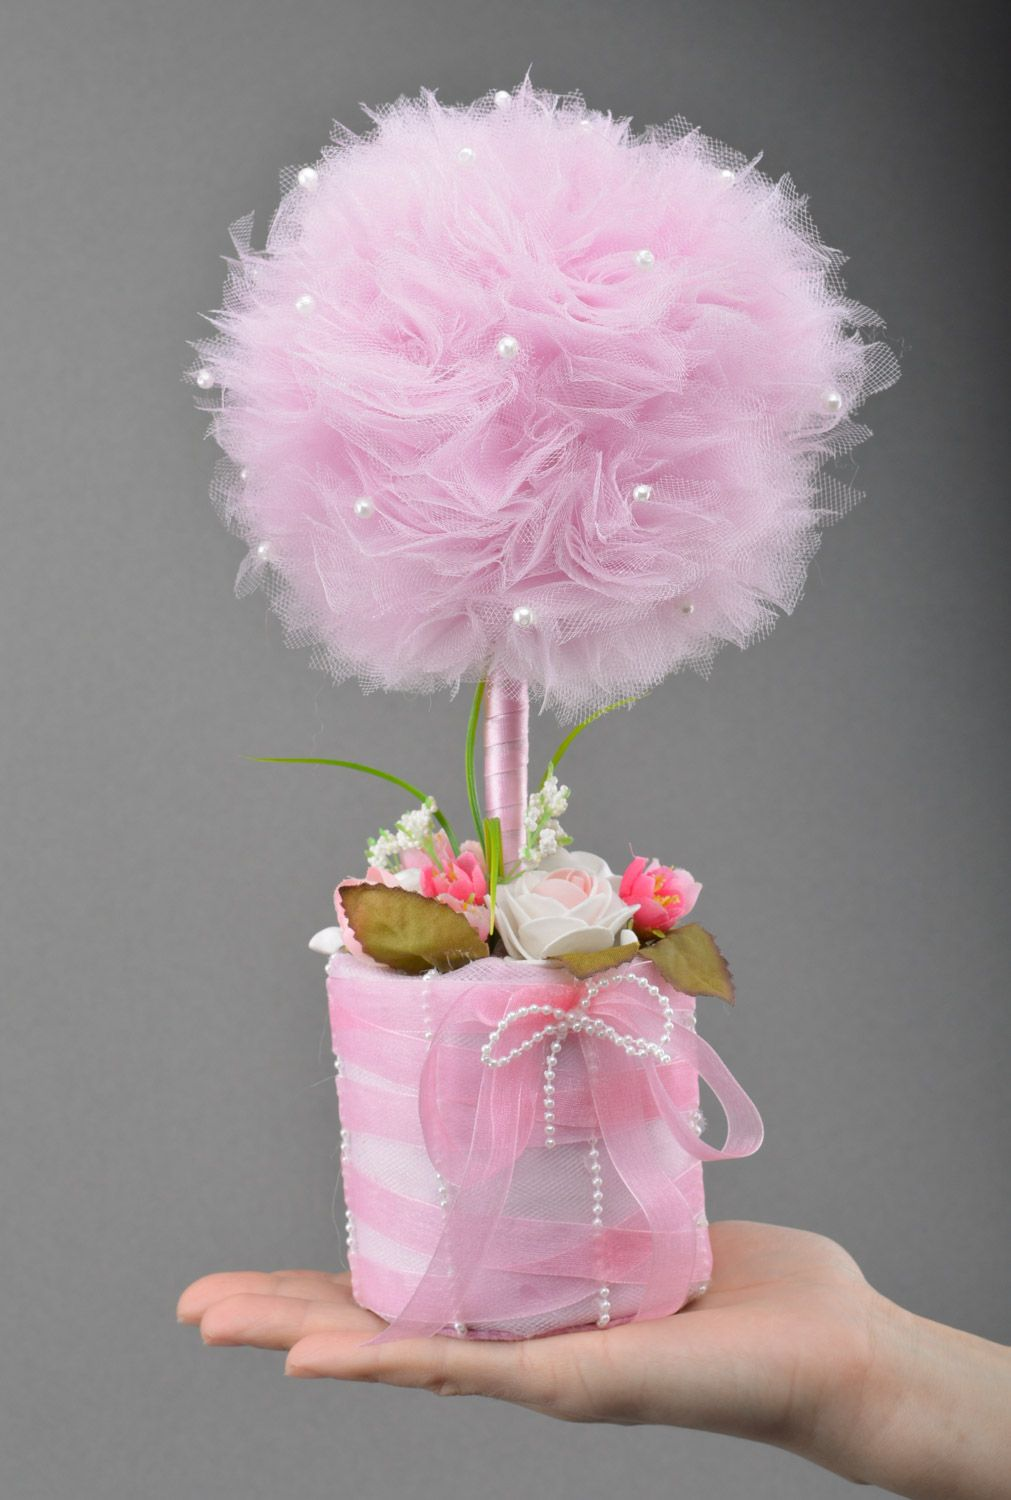 Madeheart Handmade Tender Volume Topiary Tree With Pink Tulle And